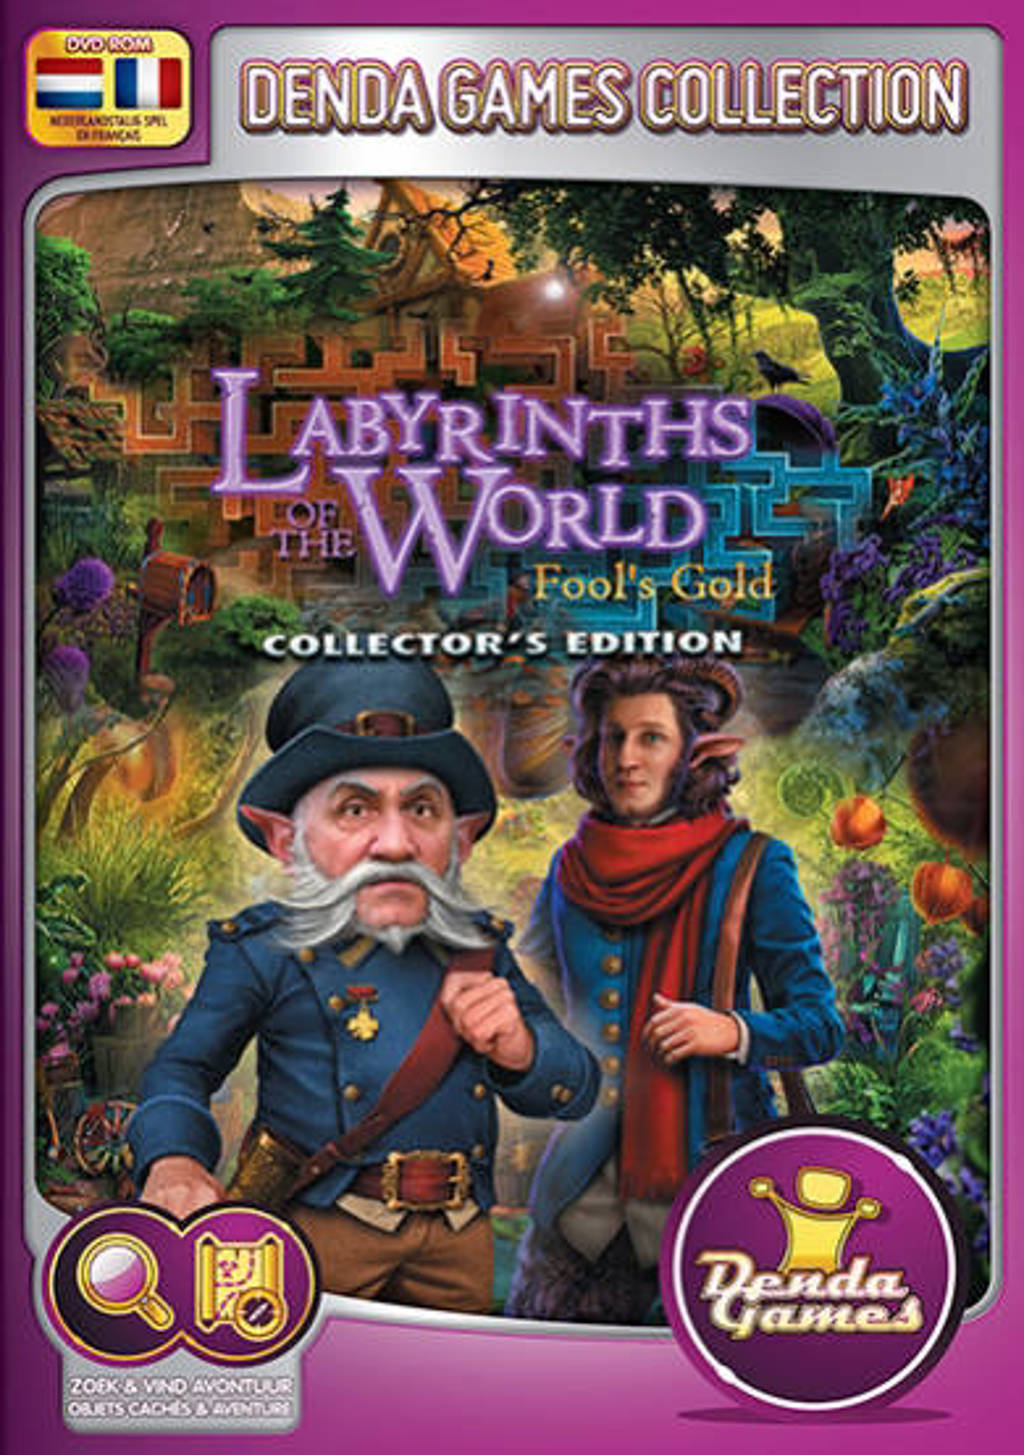 Labyrinths of the world - Fool's gold (Collectors edition) (PC)